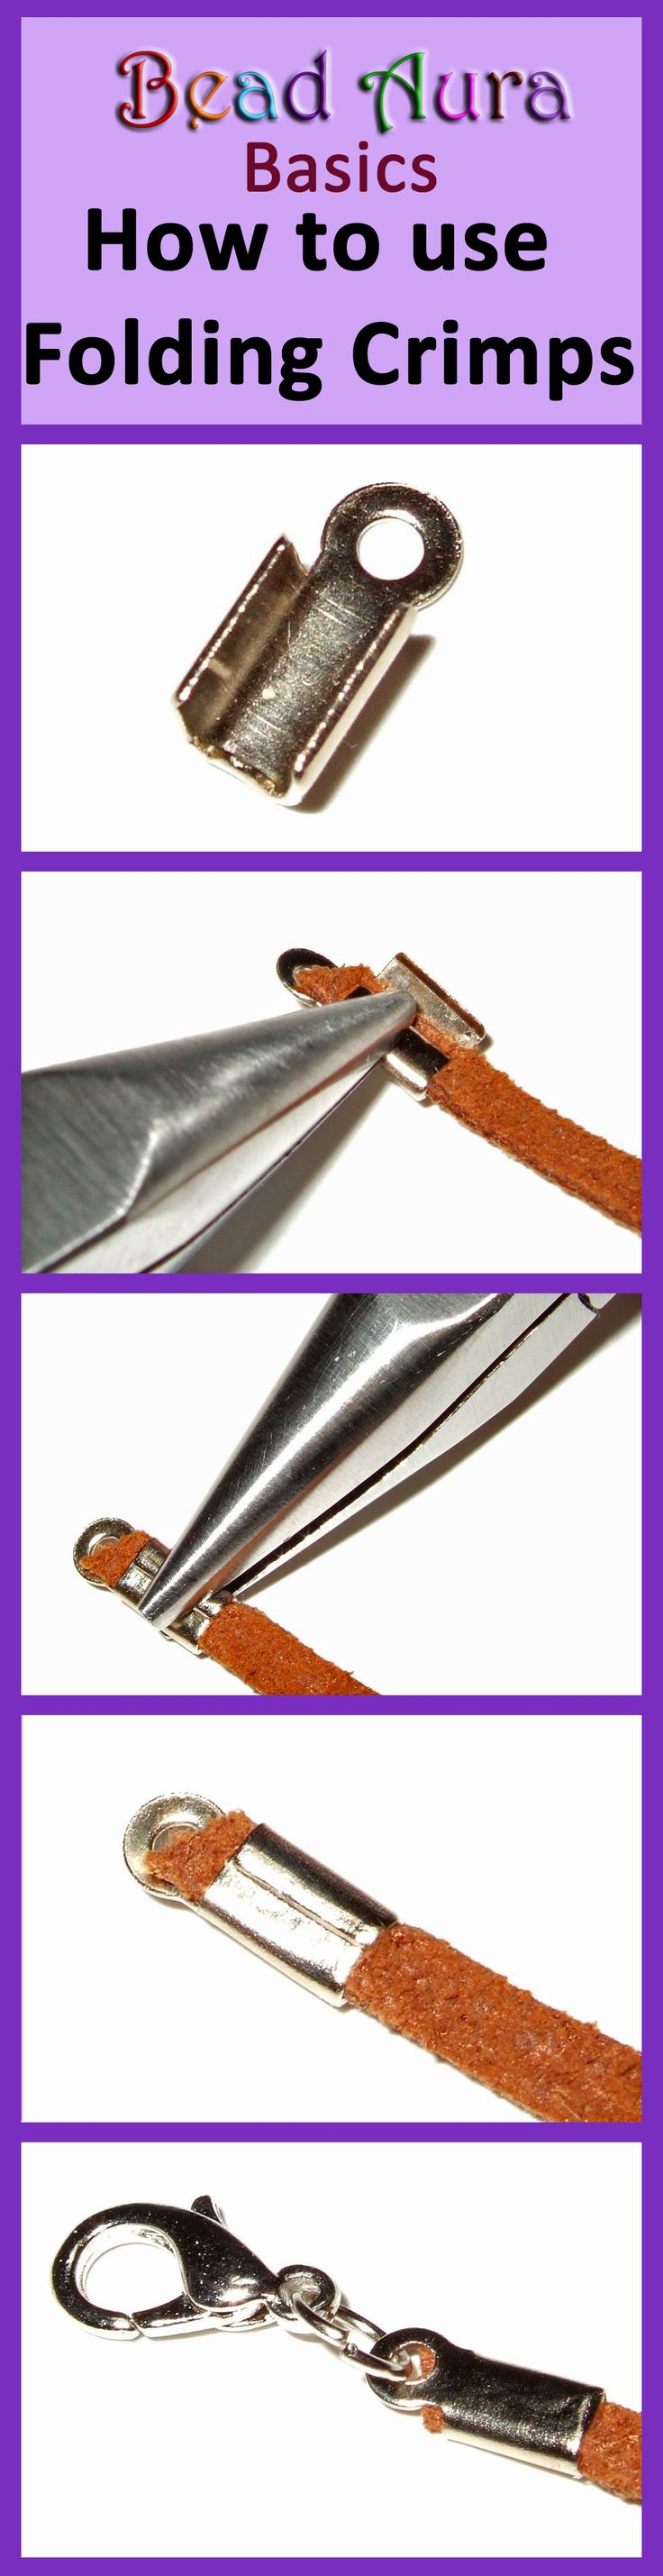 Basics to making jewellery - how to use a folding crimp. Folding crimps are used to fix your jewellery design to a clasp. They're used on thicker threads that can't fit into crimps or calottes.